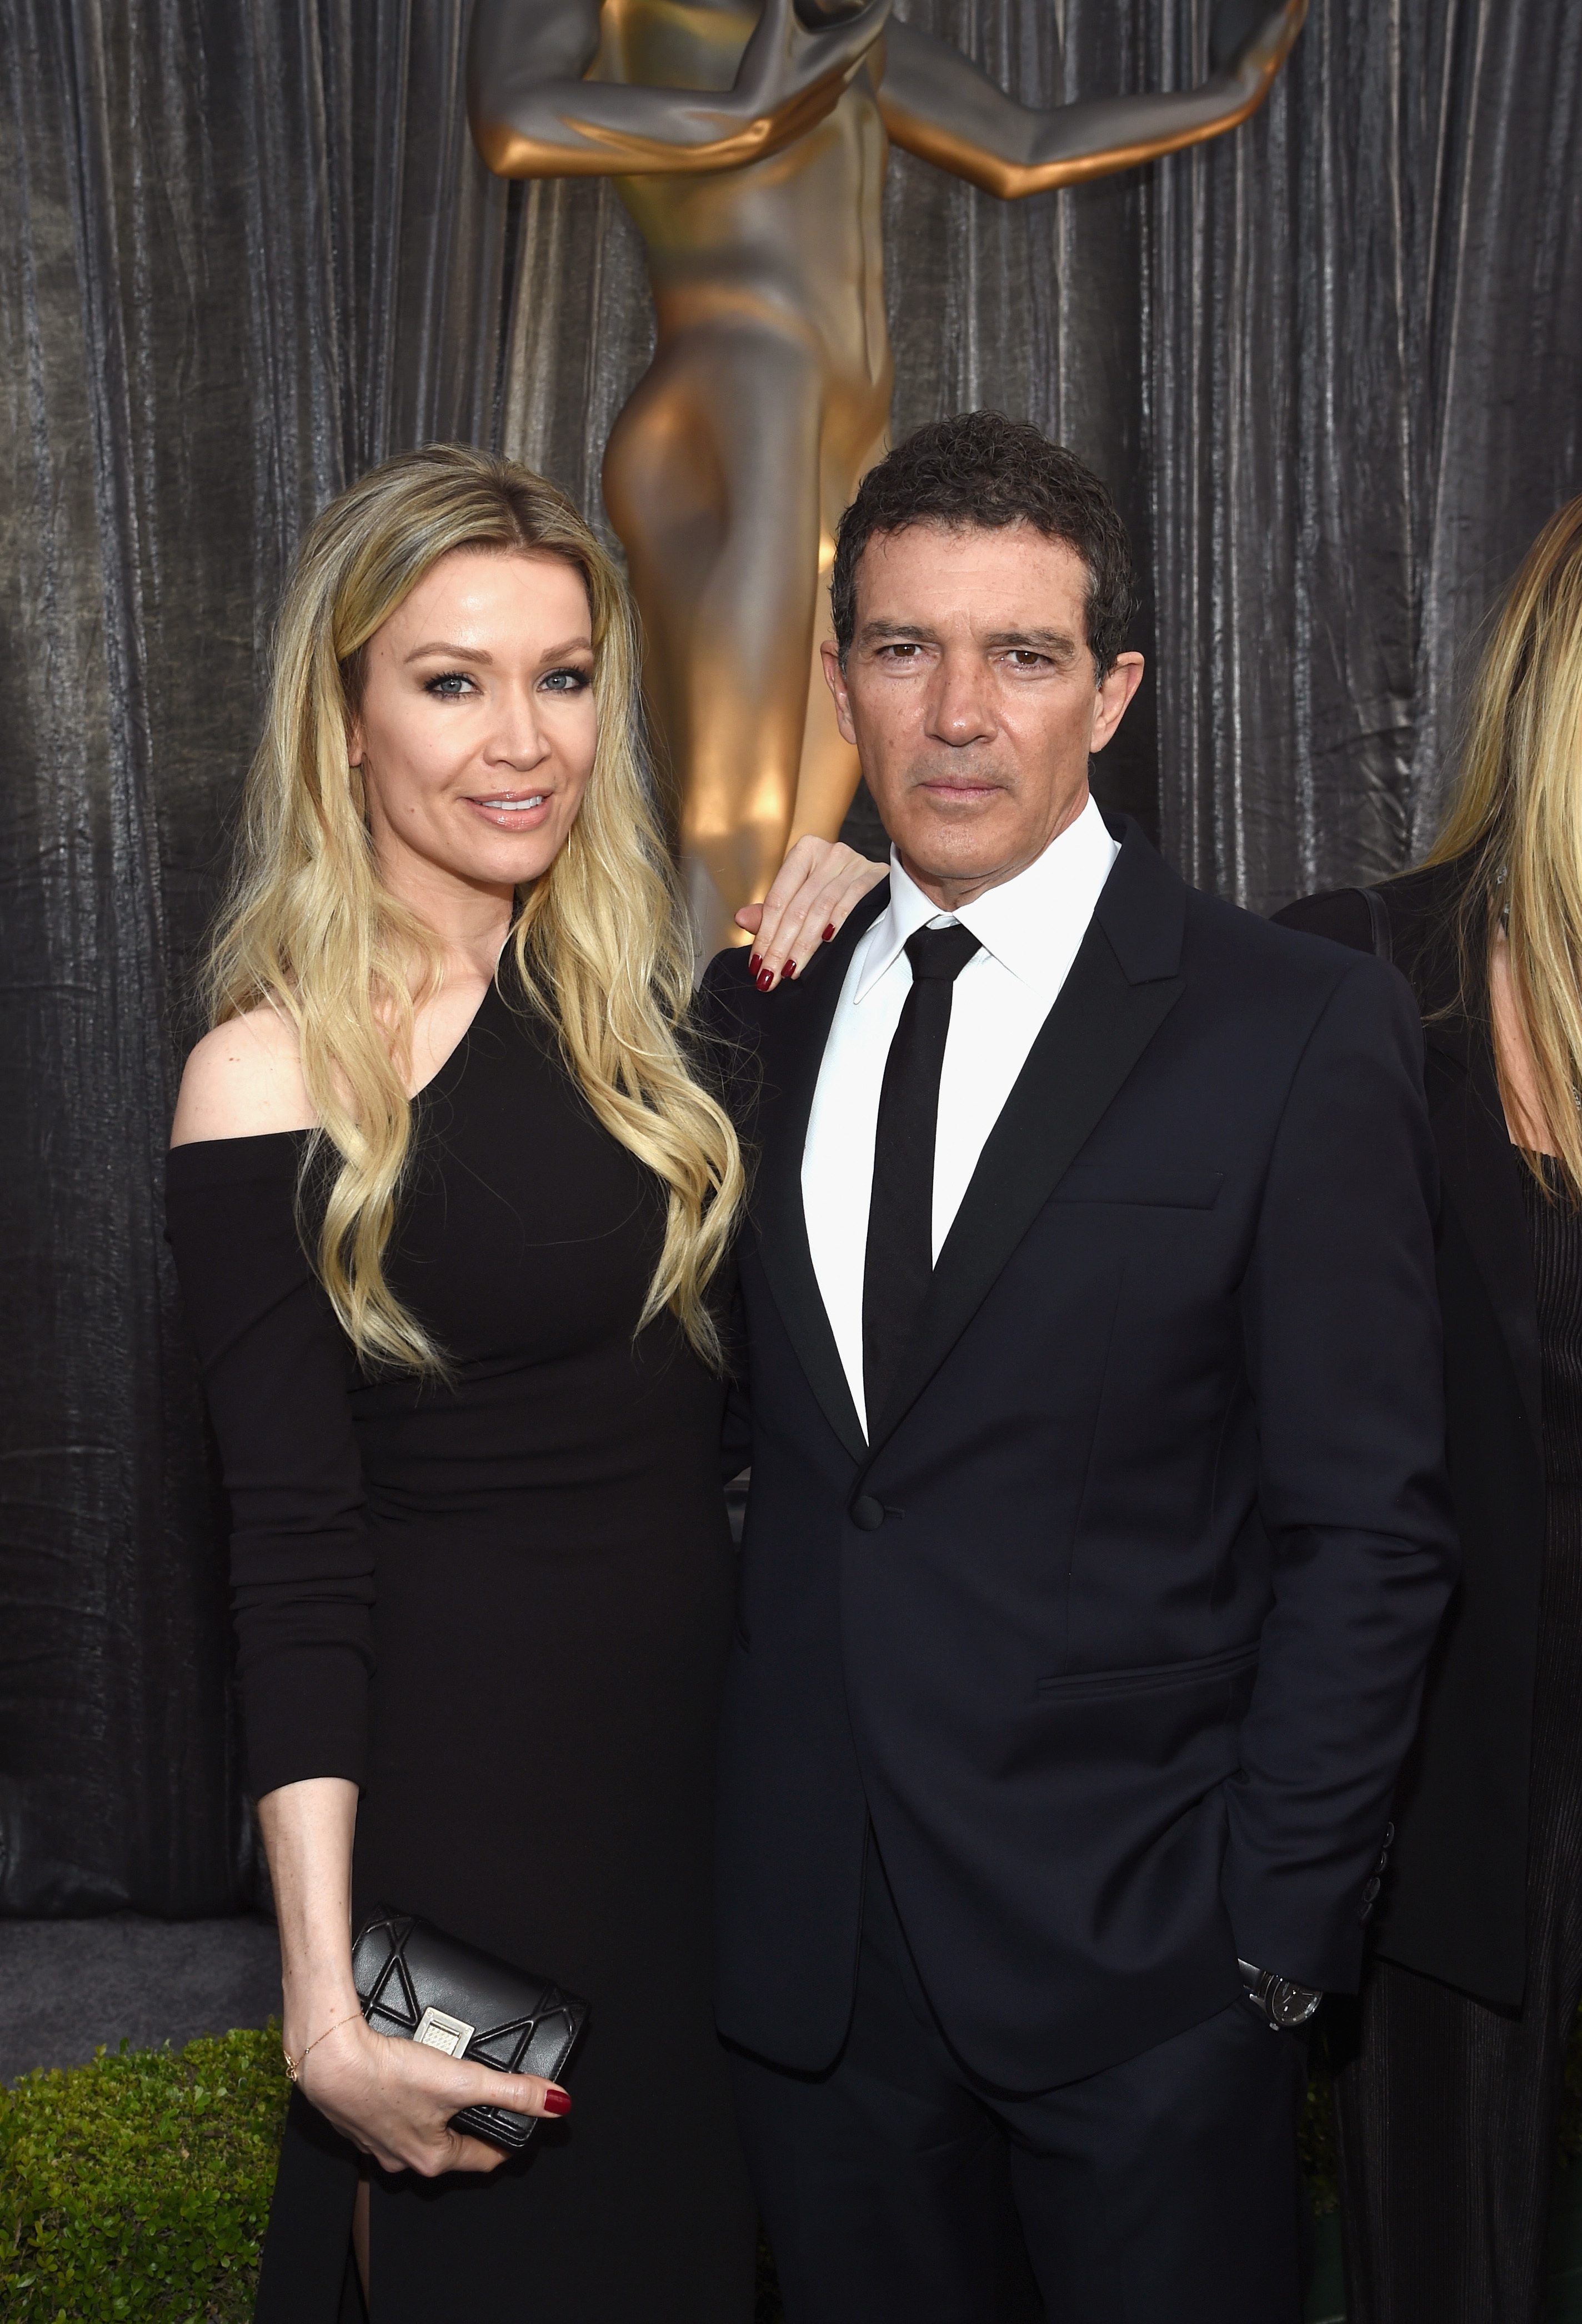 Nicole Kimpel and Antonio Banderas attend the 25th Annual Screen Actors Guild Awards in Los Angeles on Jan. 27, 2019.